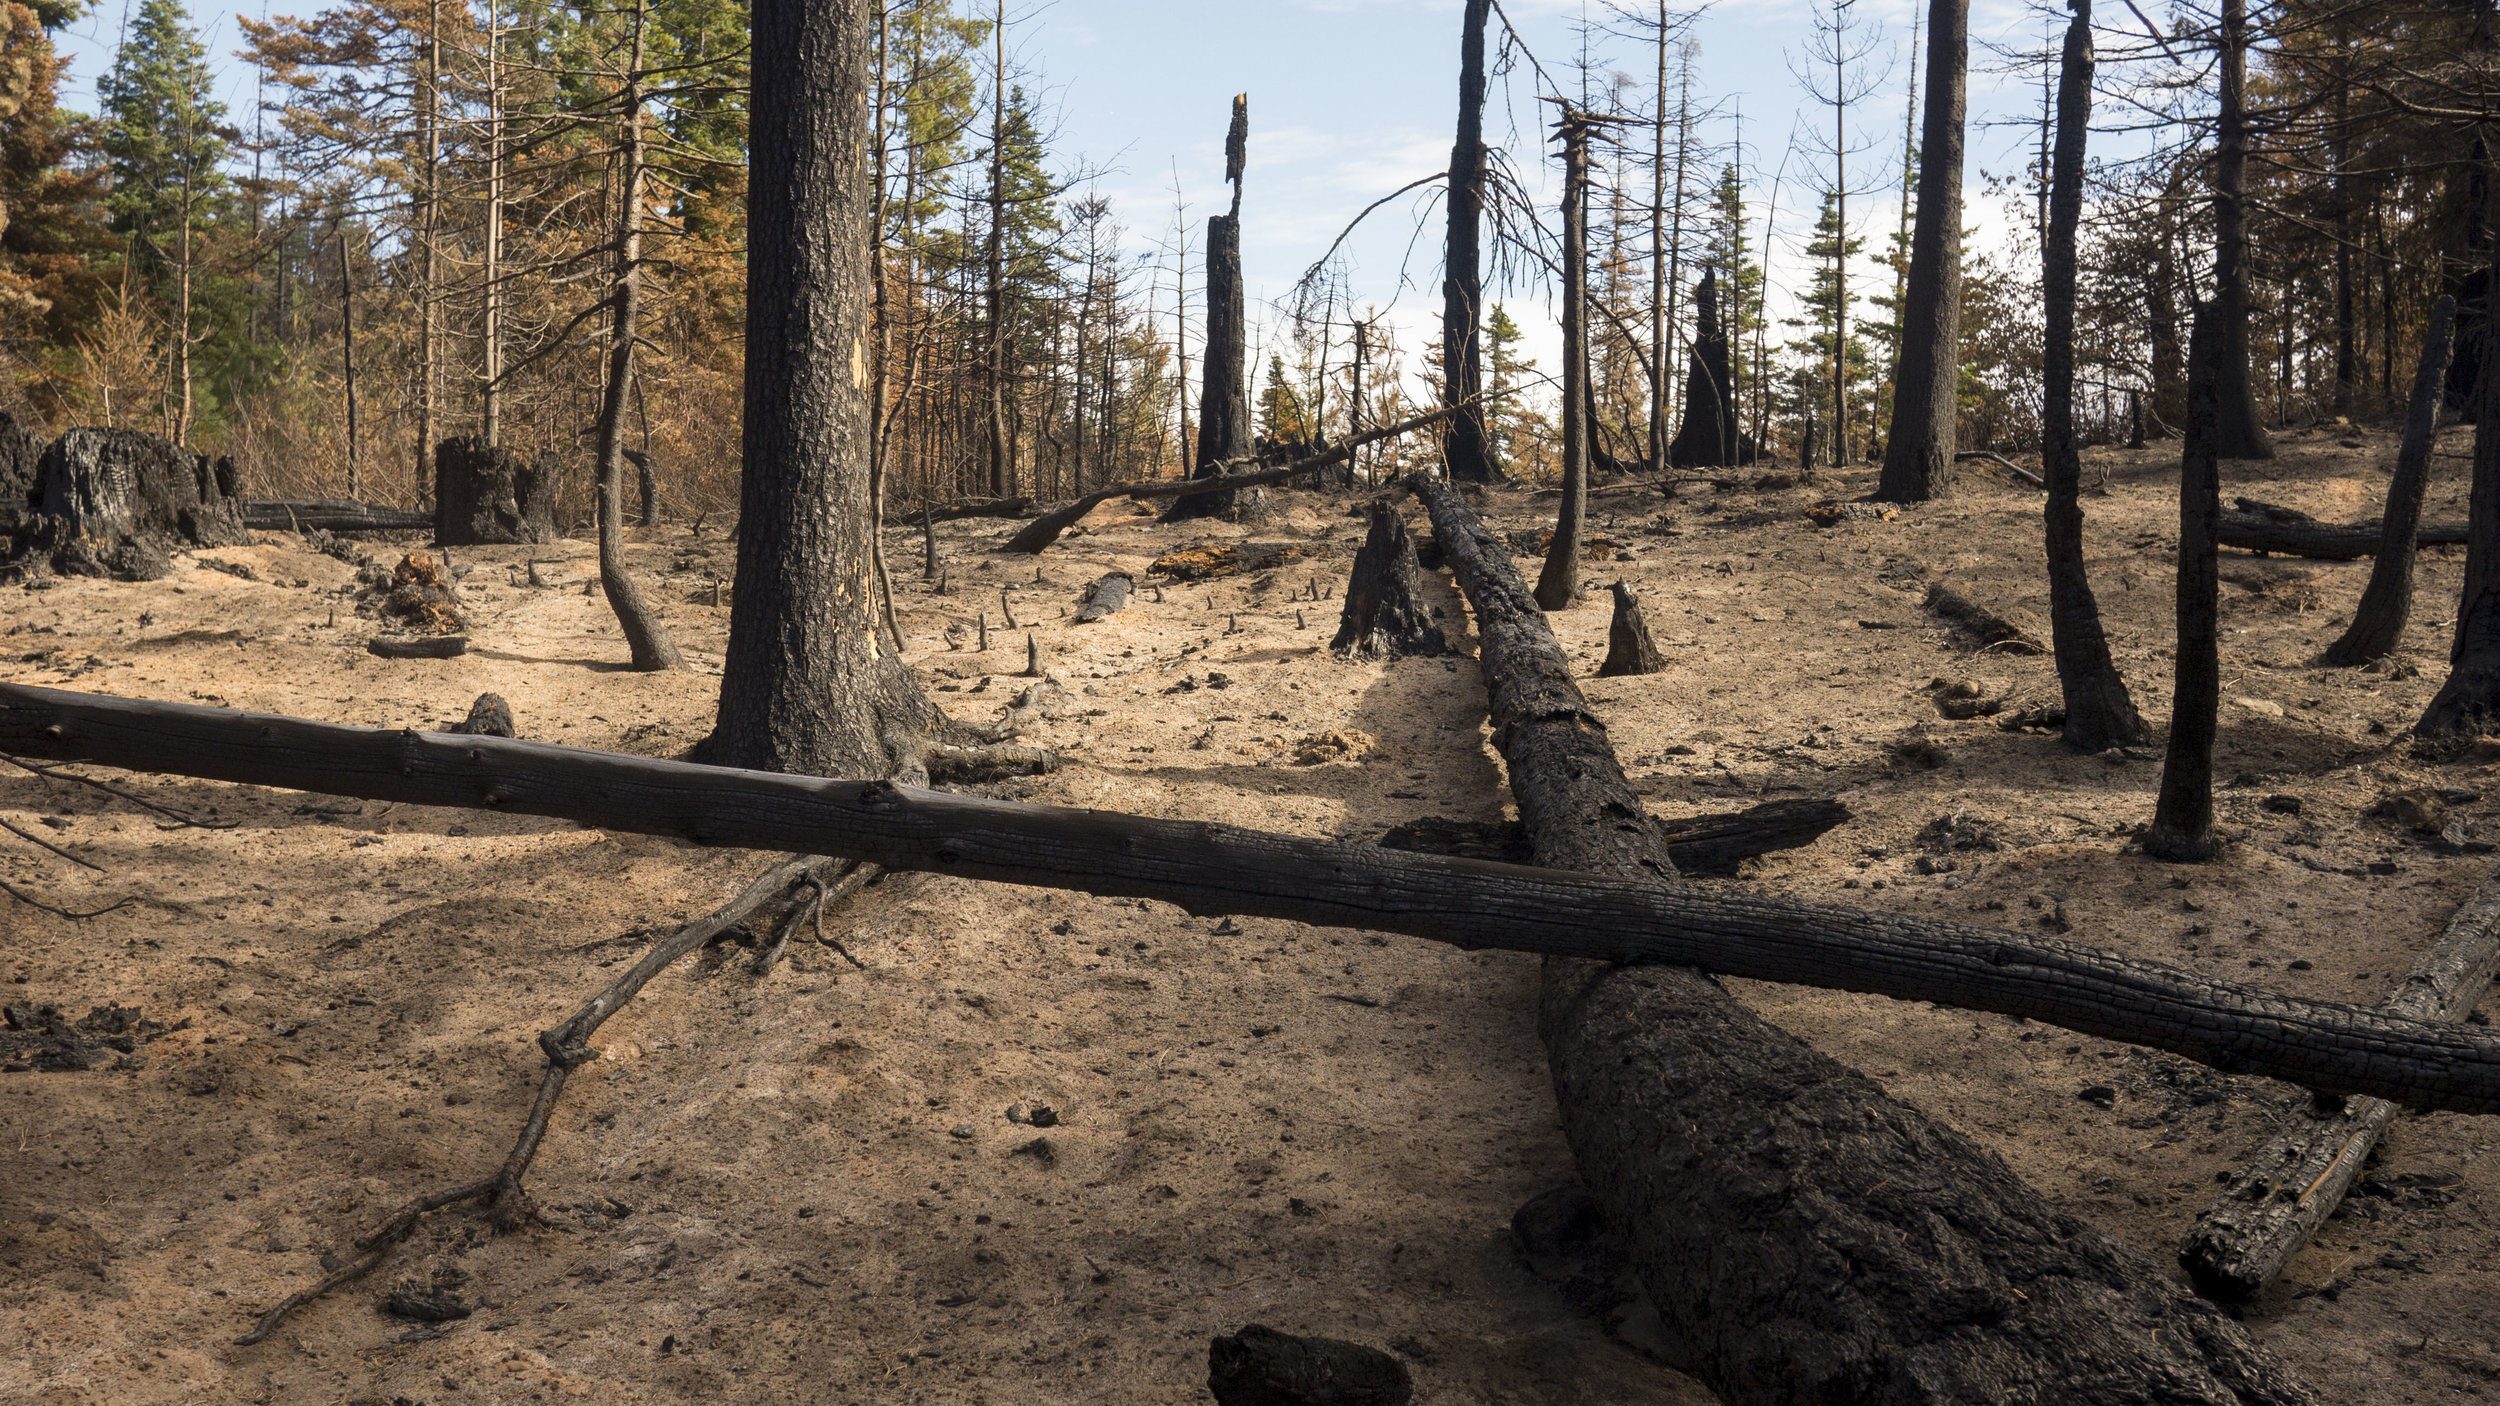 A burned area from the Jolly Mountain fire on Nature Conservancy-managed land. Photo © Will Chen / TNC